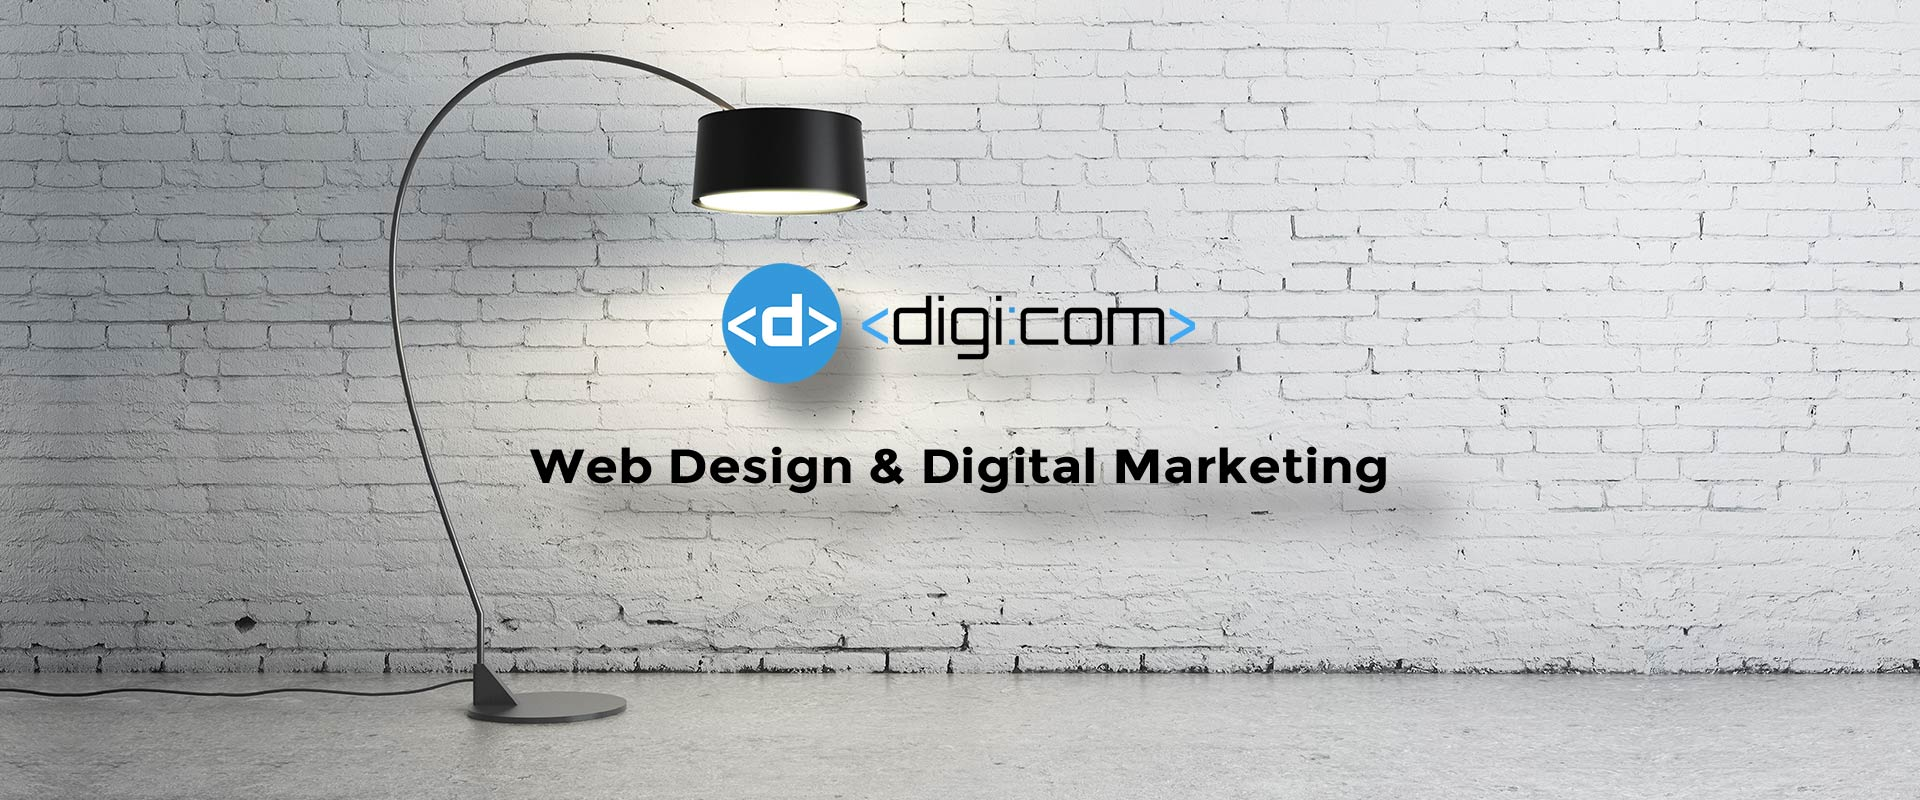 Digicom Marketing Homepage Feature